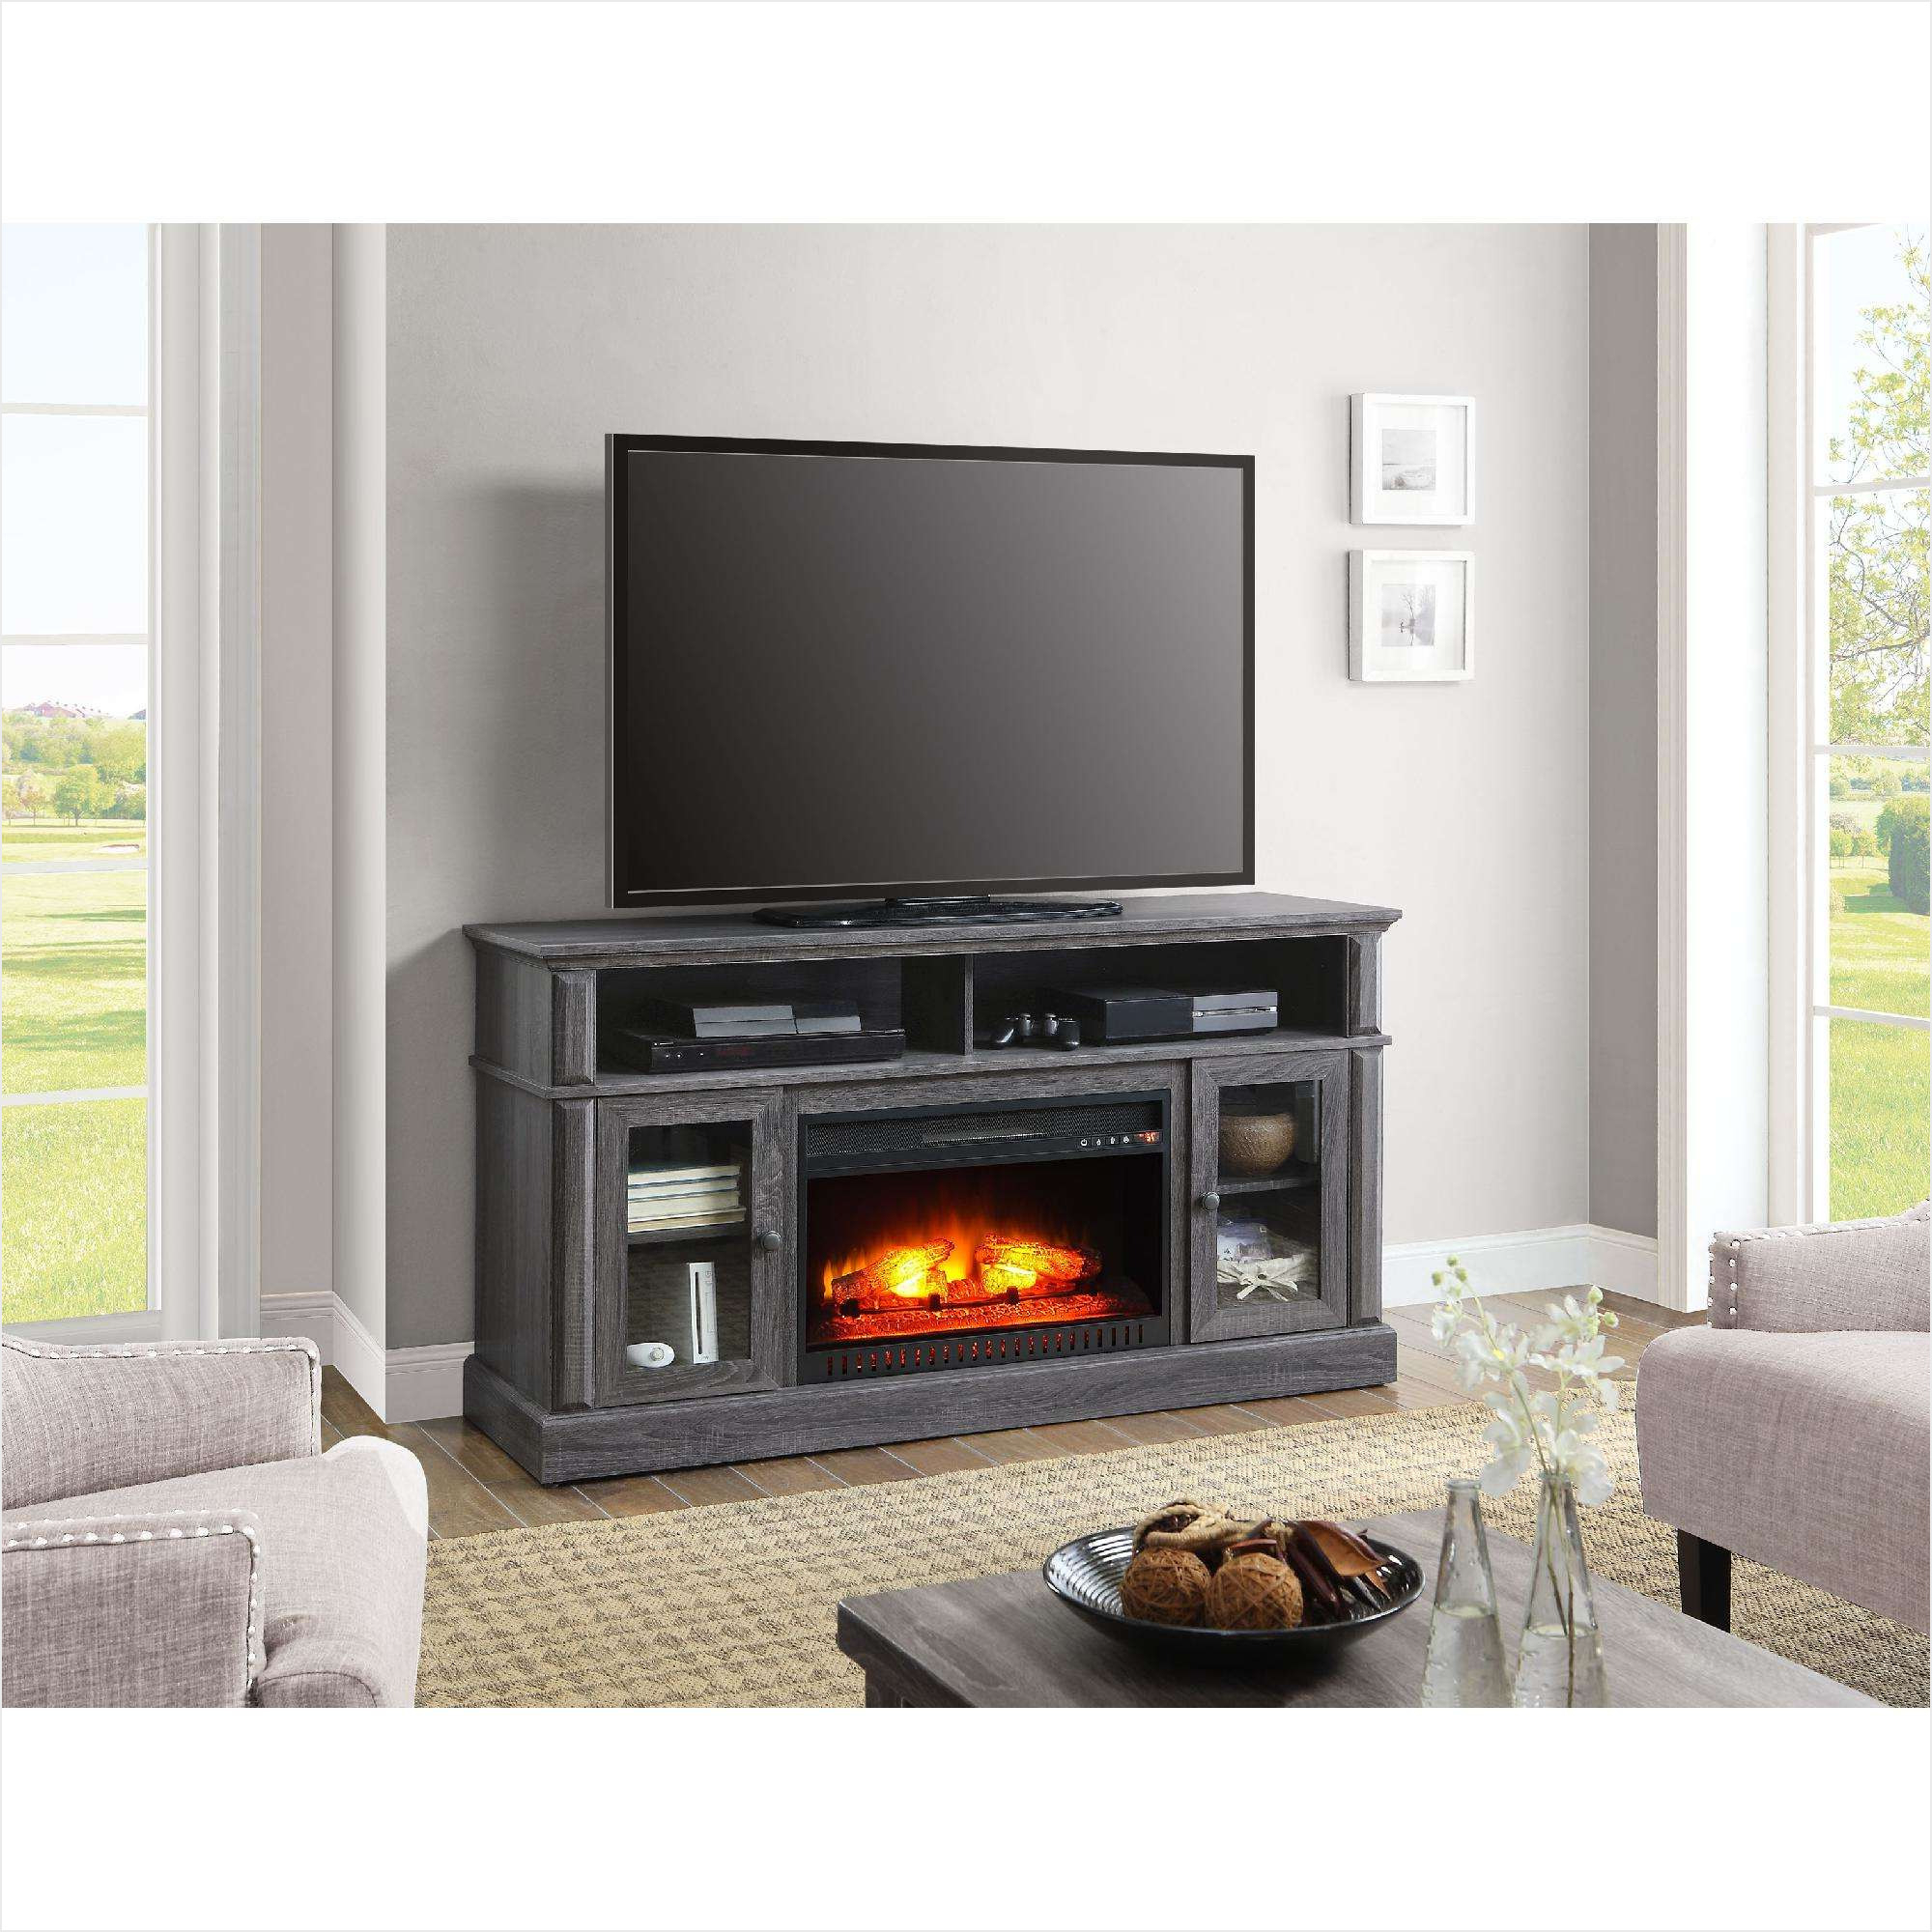 Latest Big Lots Tv Stands Throughout Best Of Big Lots Tv Stands Fireplace Tv Stands Big Lots V6P (View 10 of 20)